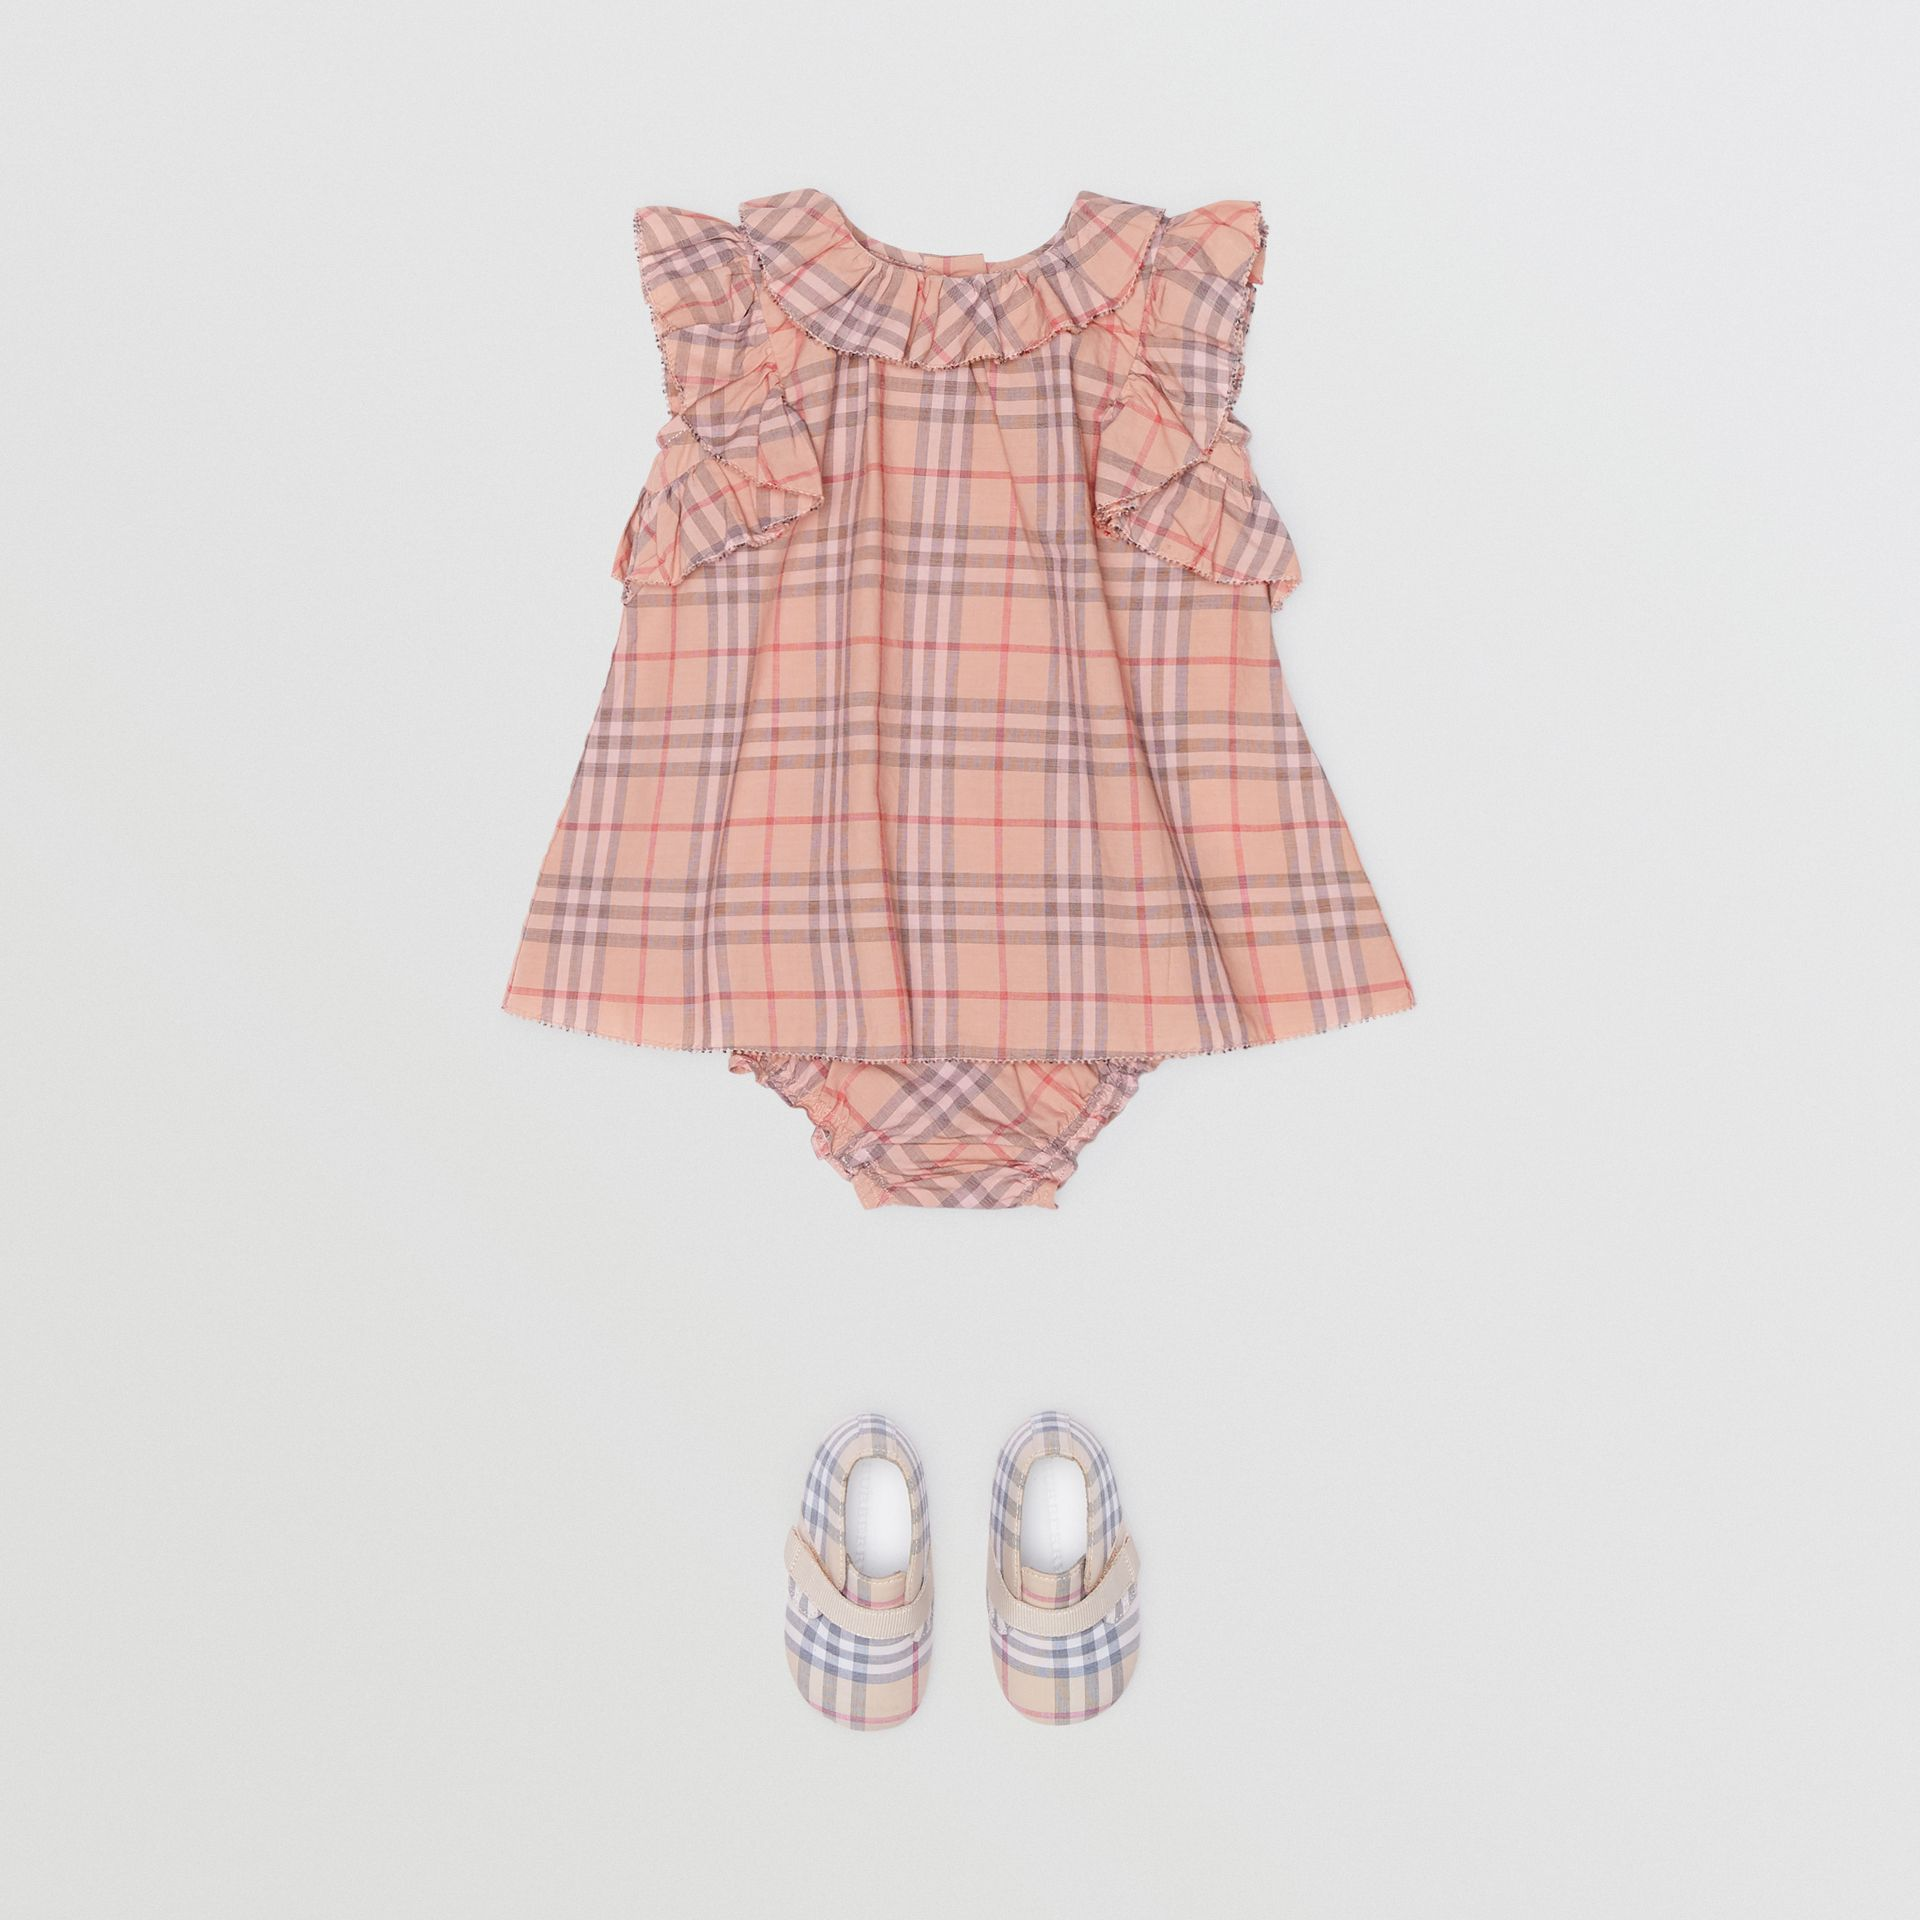 Robe en coton à motif check avec volants et bloomer (Rose Clair) - Enfant | Burberry - photo de la galerie 2